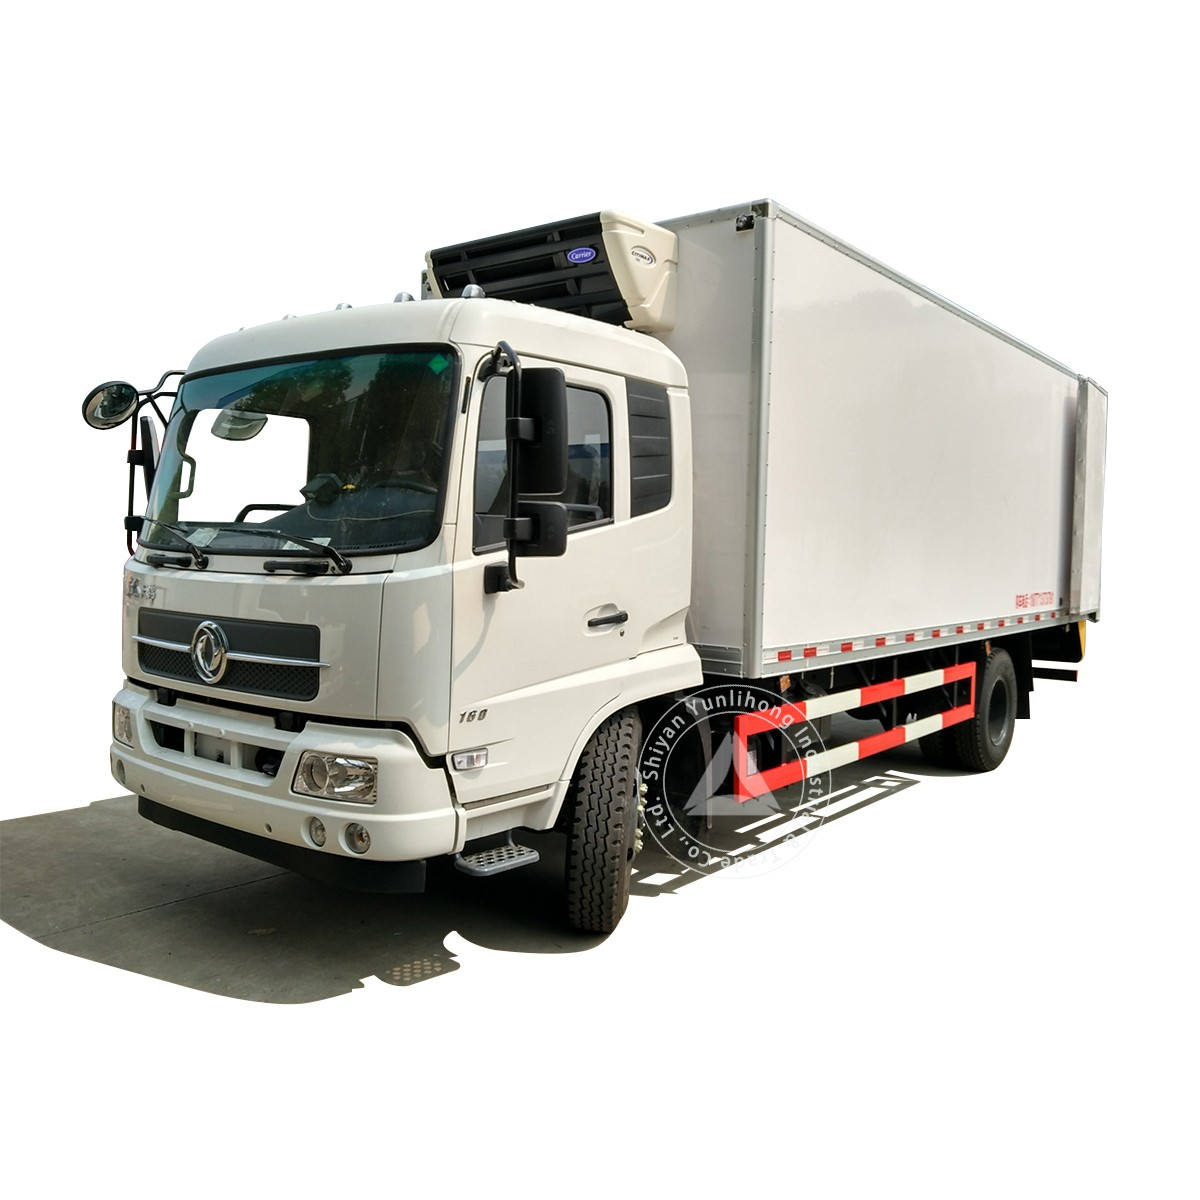 Dongfeng KR 4x2 GVW 16 Ton City Distribution Box TrucK Chassis Manufacturers, Dongfeng KR 4x2 GVW 16 Ton City Distribution Box TrucK Chassis Factory, Supply Dongfeng KR 4x2 GVW 16 Ton City Distribution Box TrucK Chassis